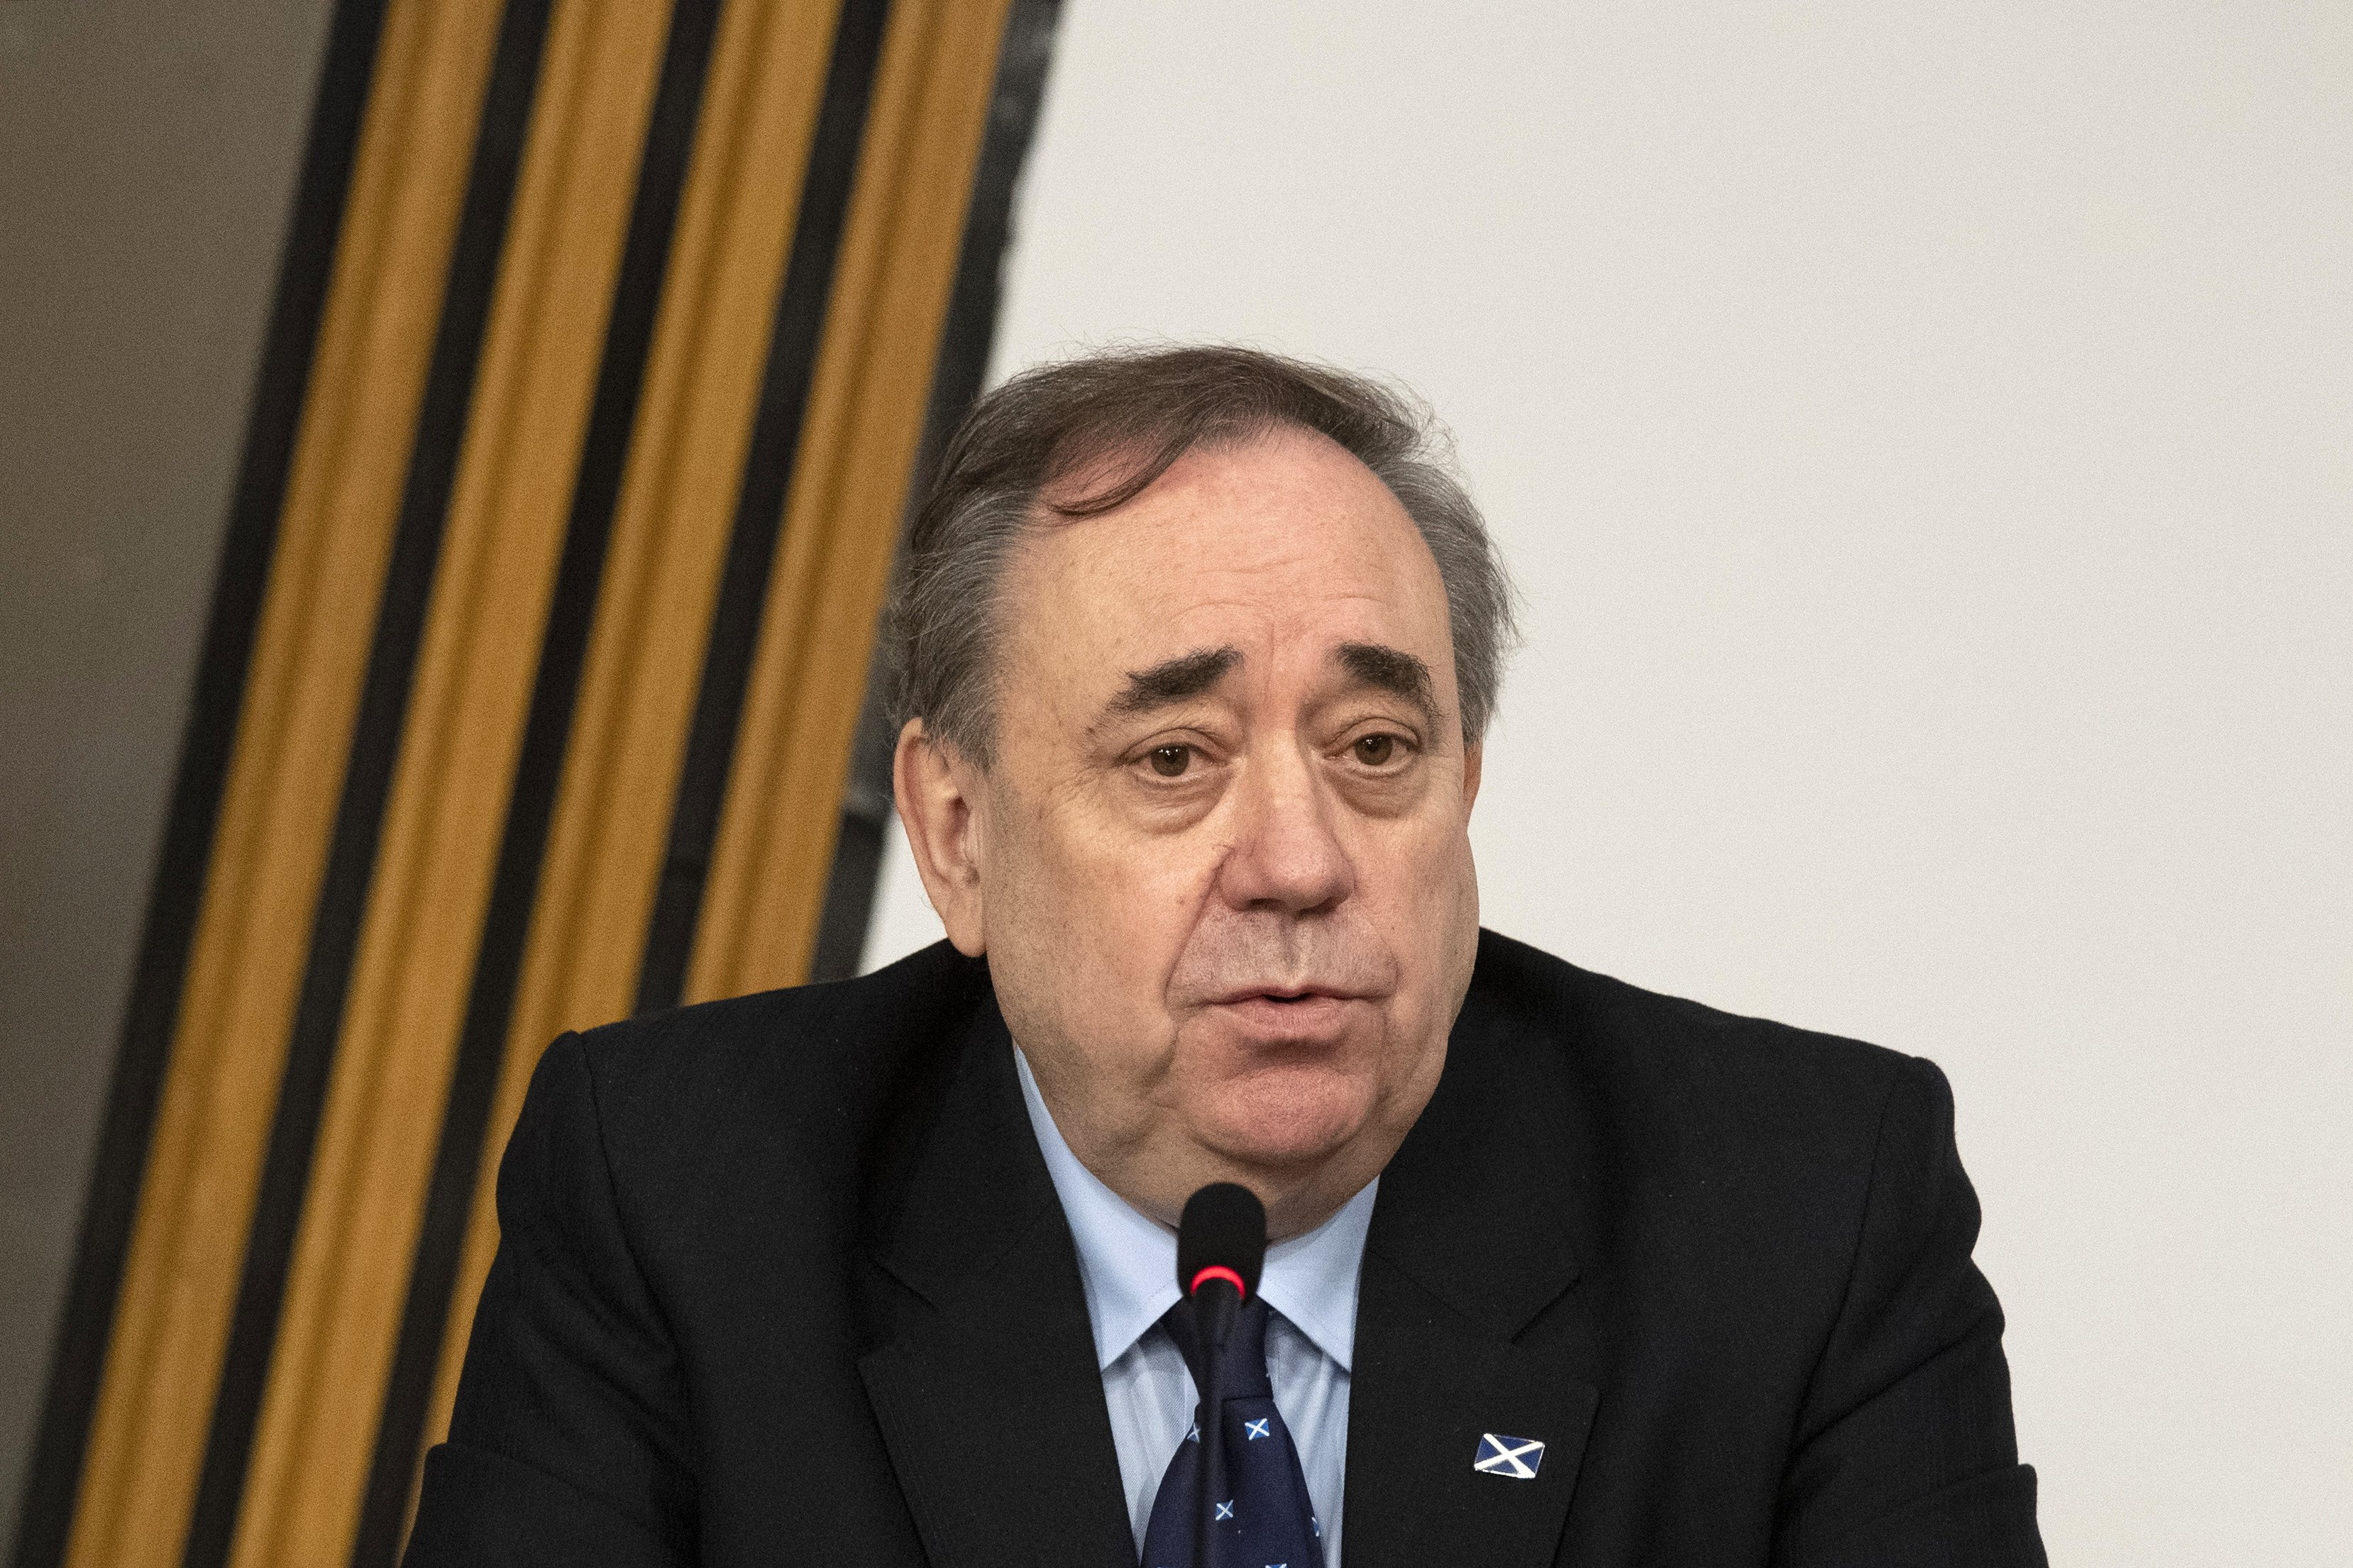 Newly published legal advice appears to contradict Salmond claim